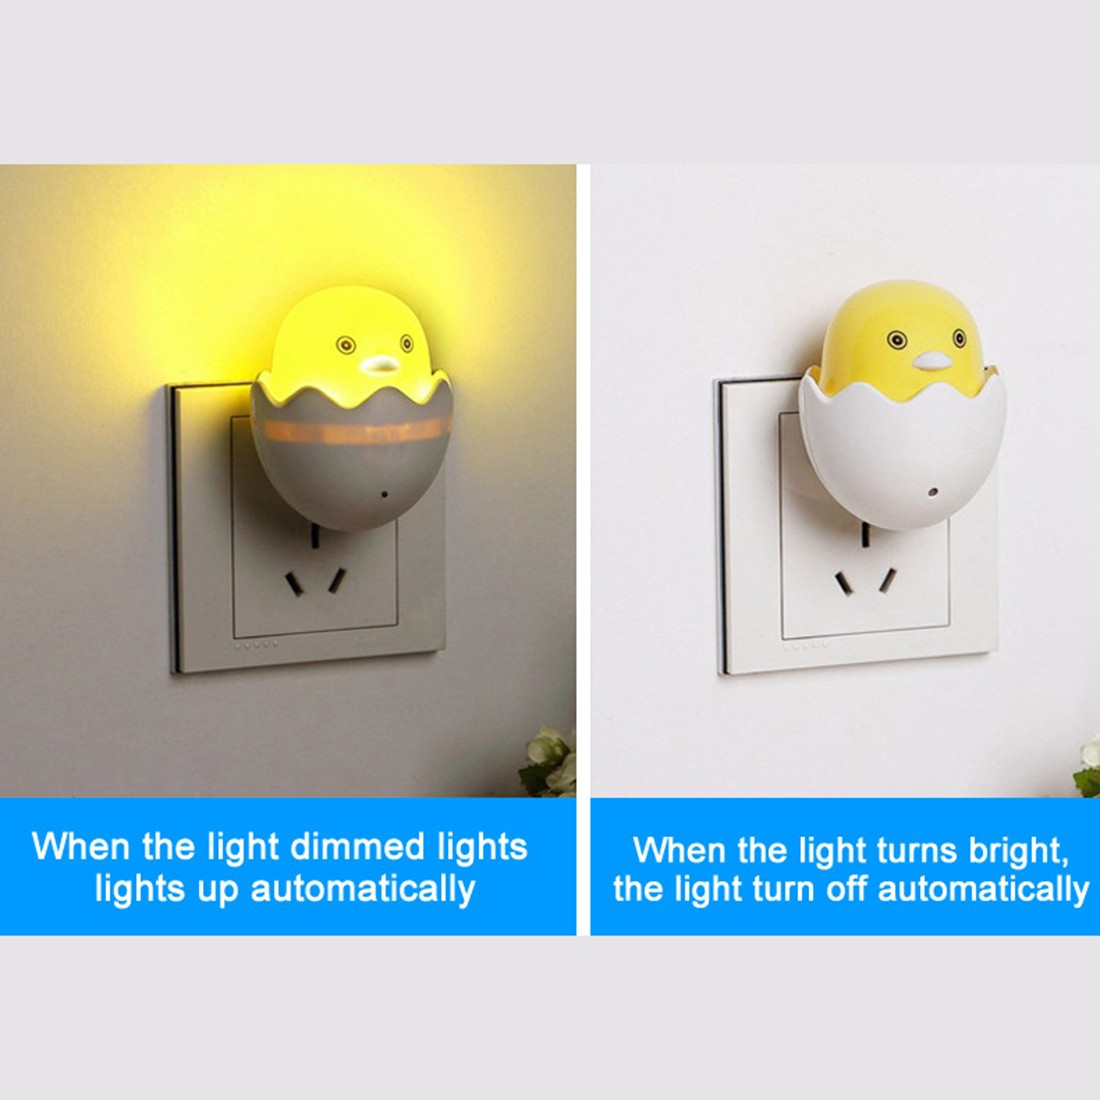 Cute EU Plug Wall Socket Lamps LED Night Light AC 220V Light Control Sensor Yellow Duck Bedroom Lamp Gift for Children